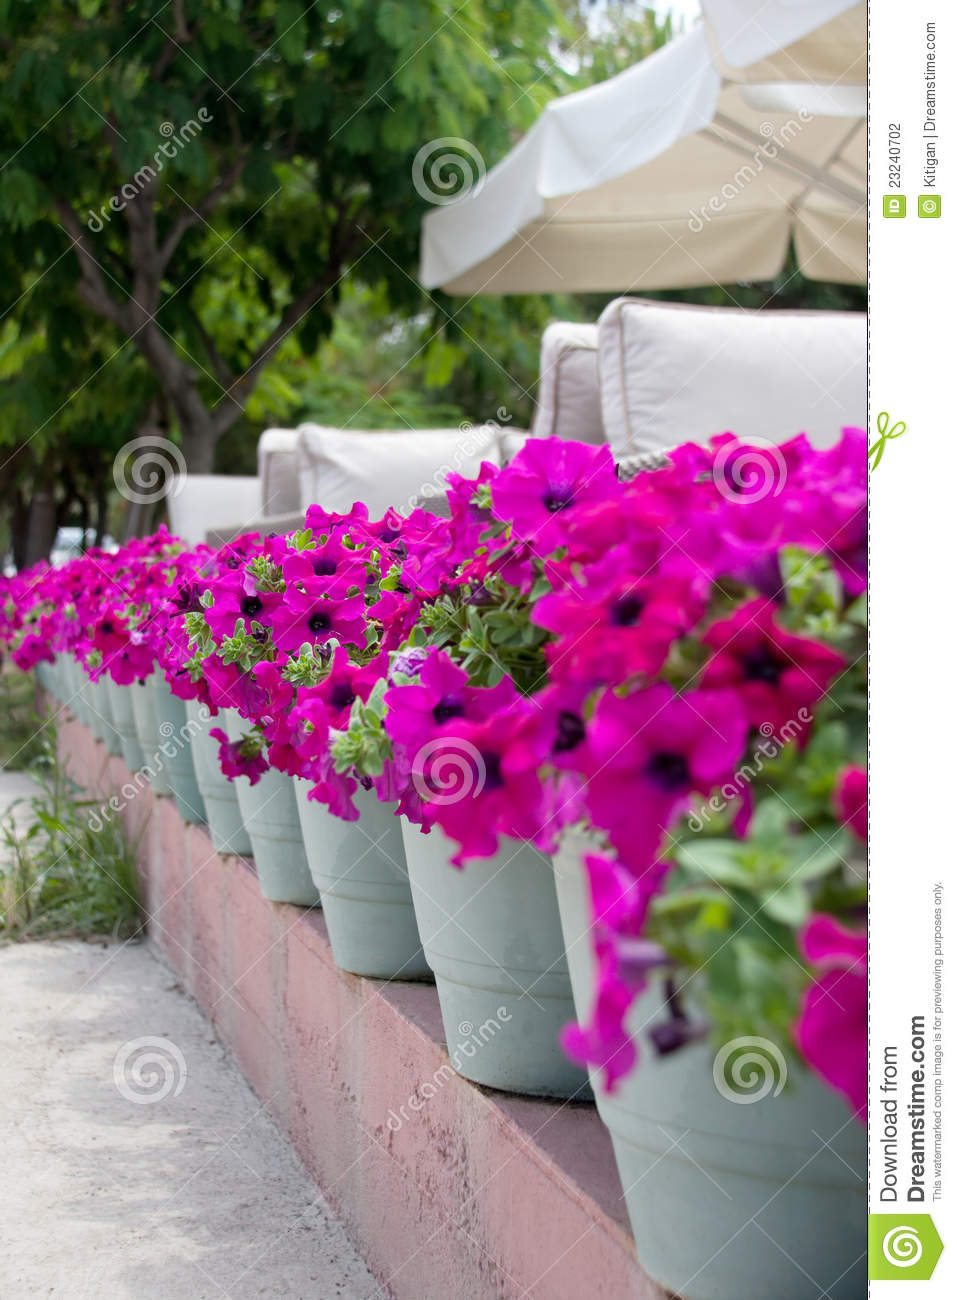 Row of potted flowers stock photo image of potted green 23240702 row of potted flowers mightylinksfo